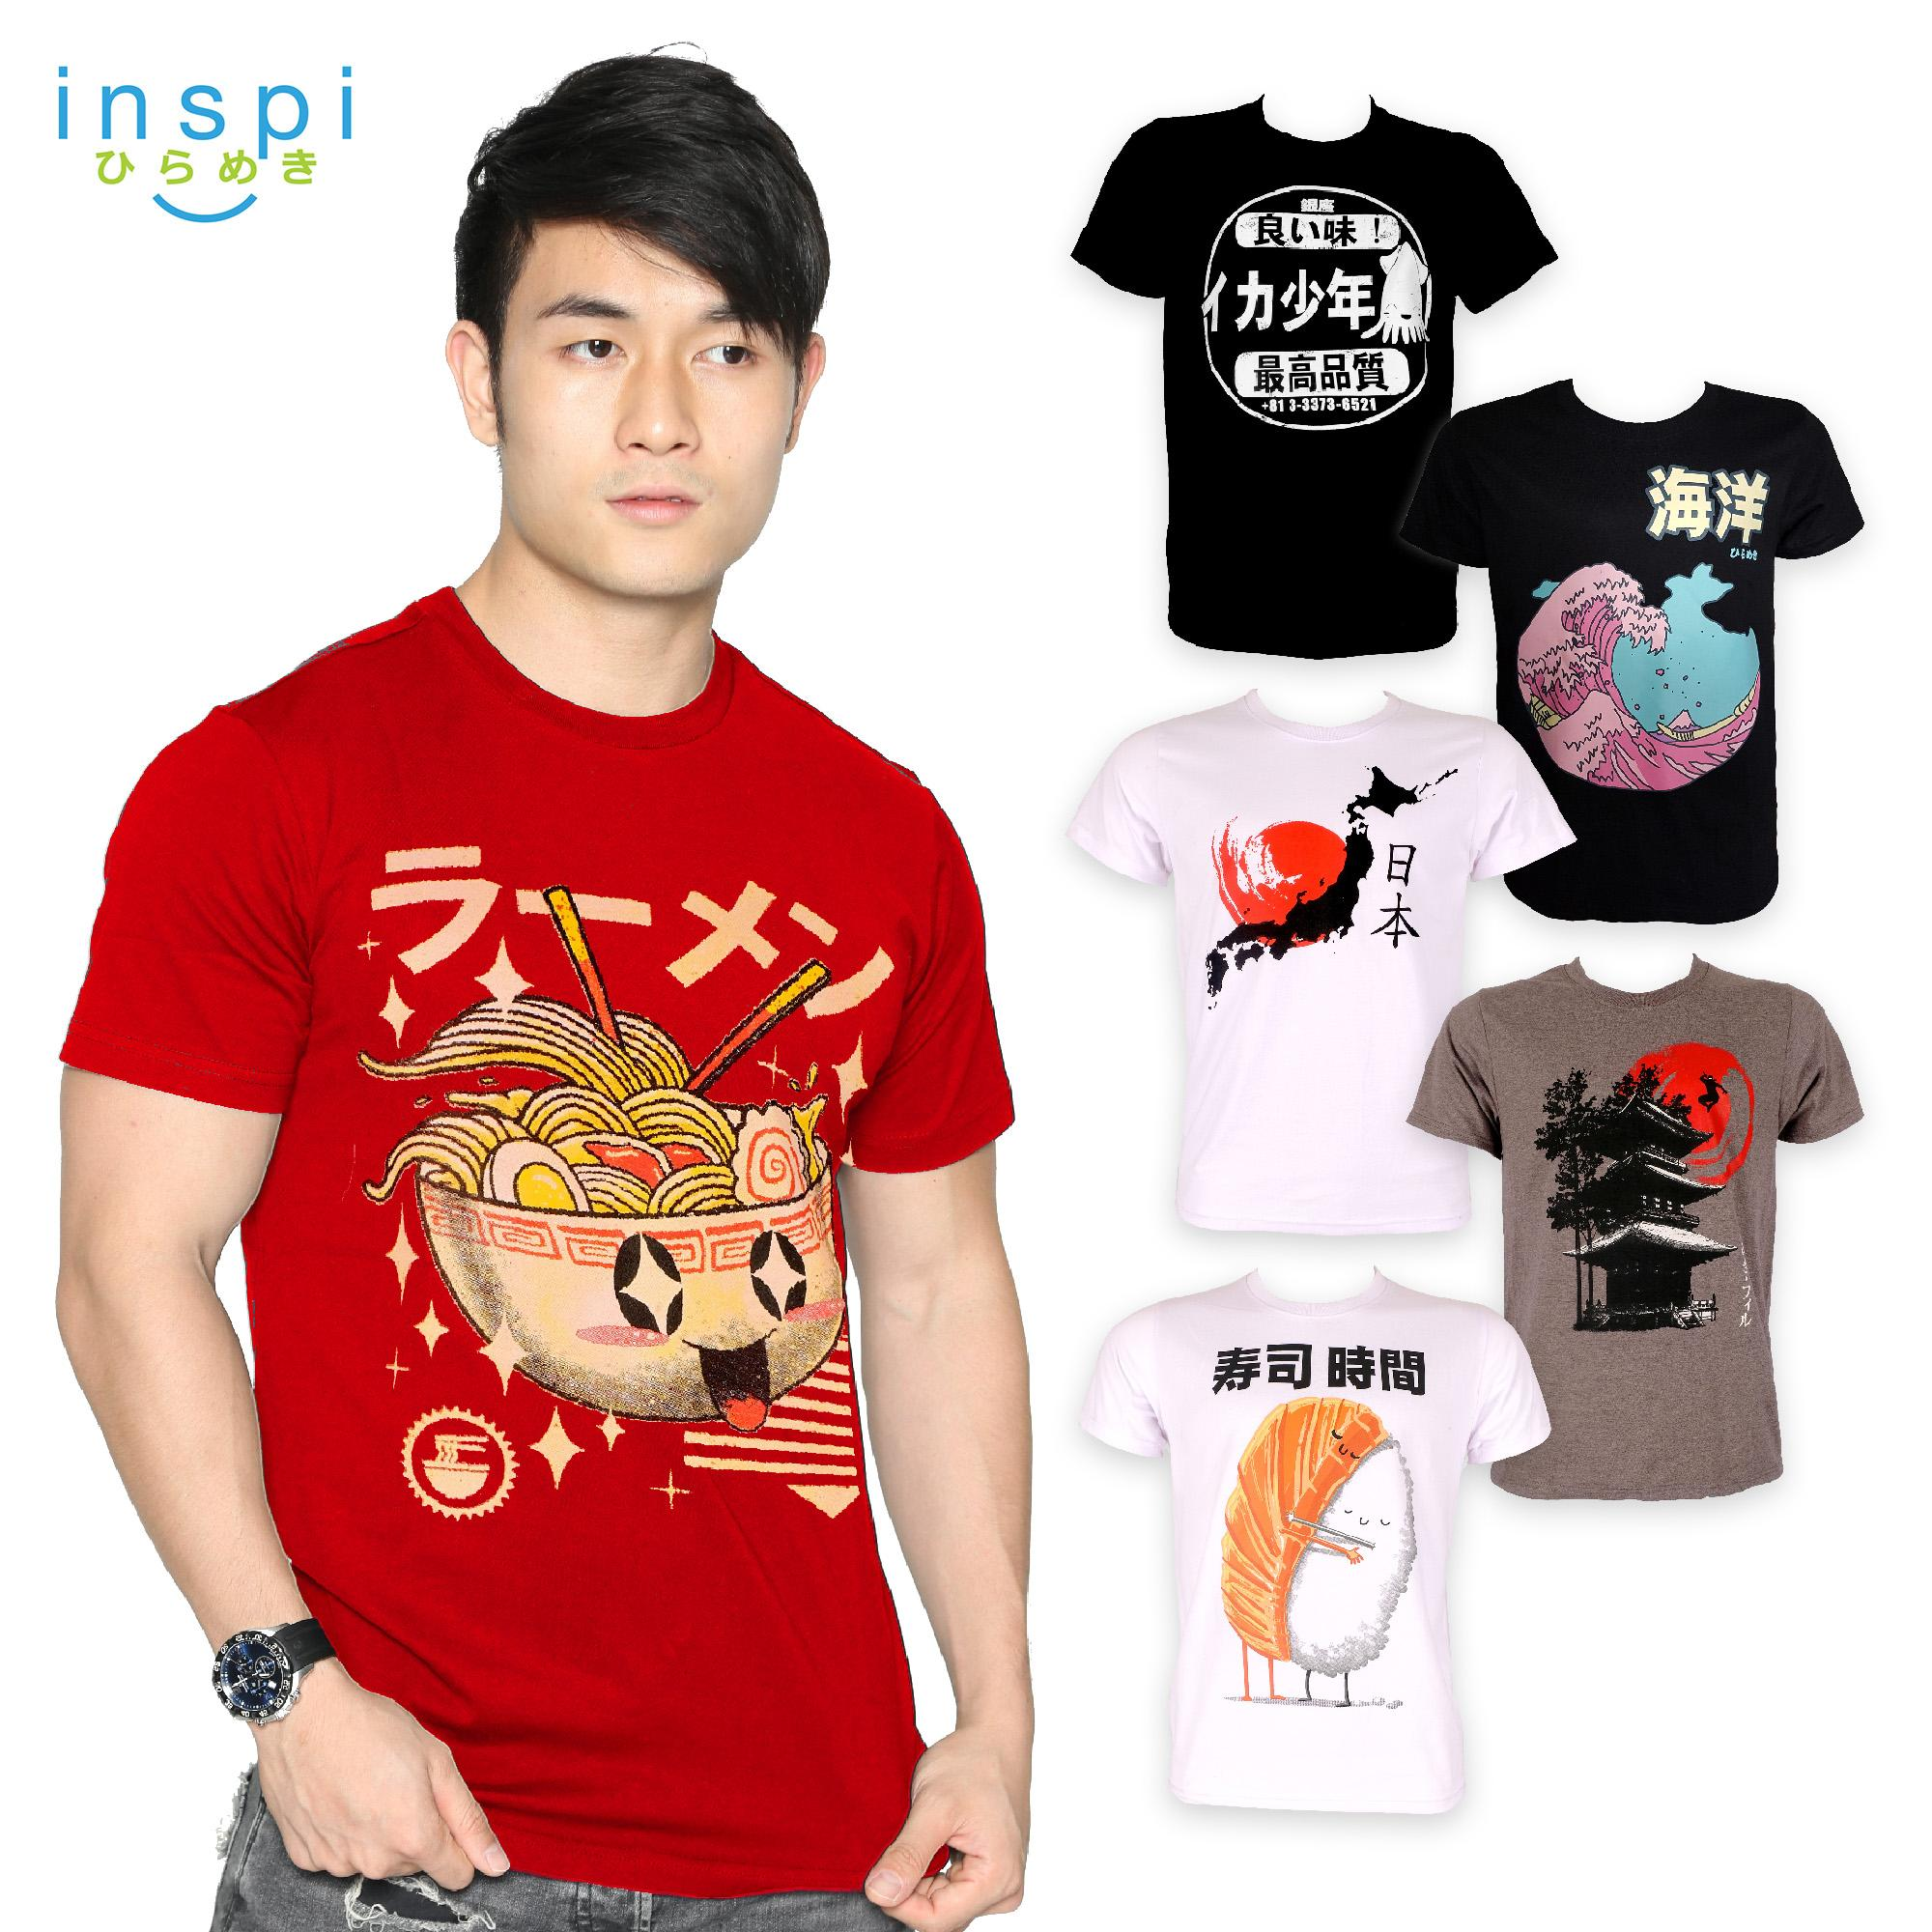 a71ffb2cca9f INSPI Tees Nippon Collection tshirt printed graphic tee Mens t shirt shirts  for men tshirts sale